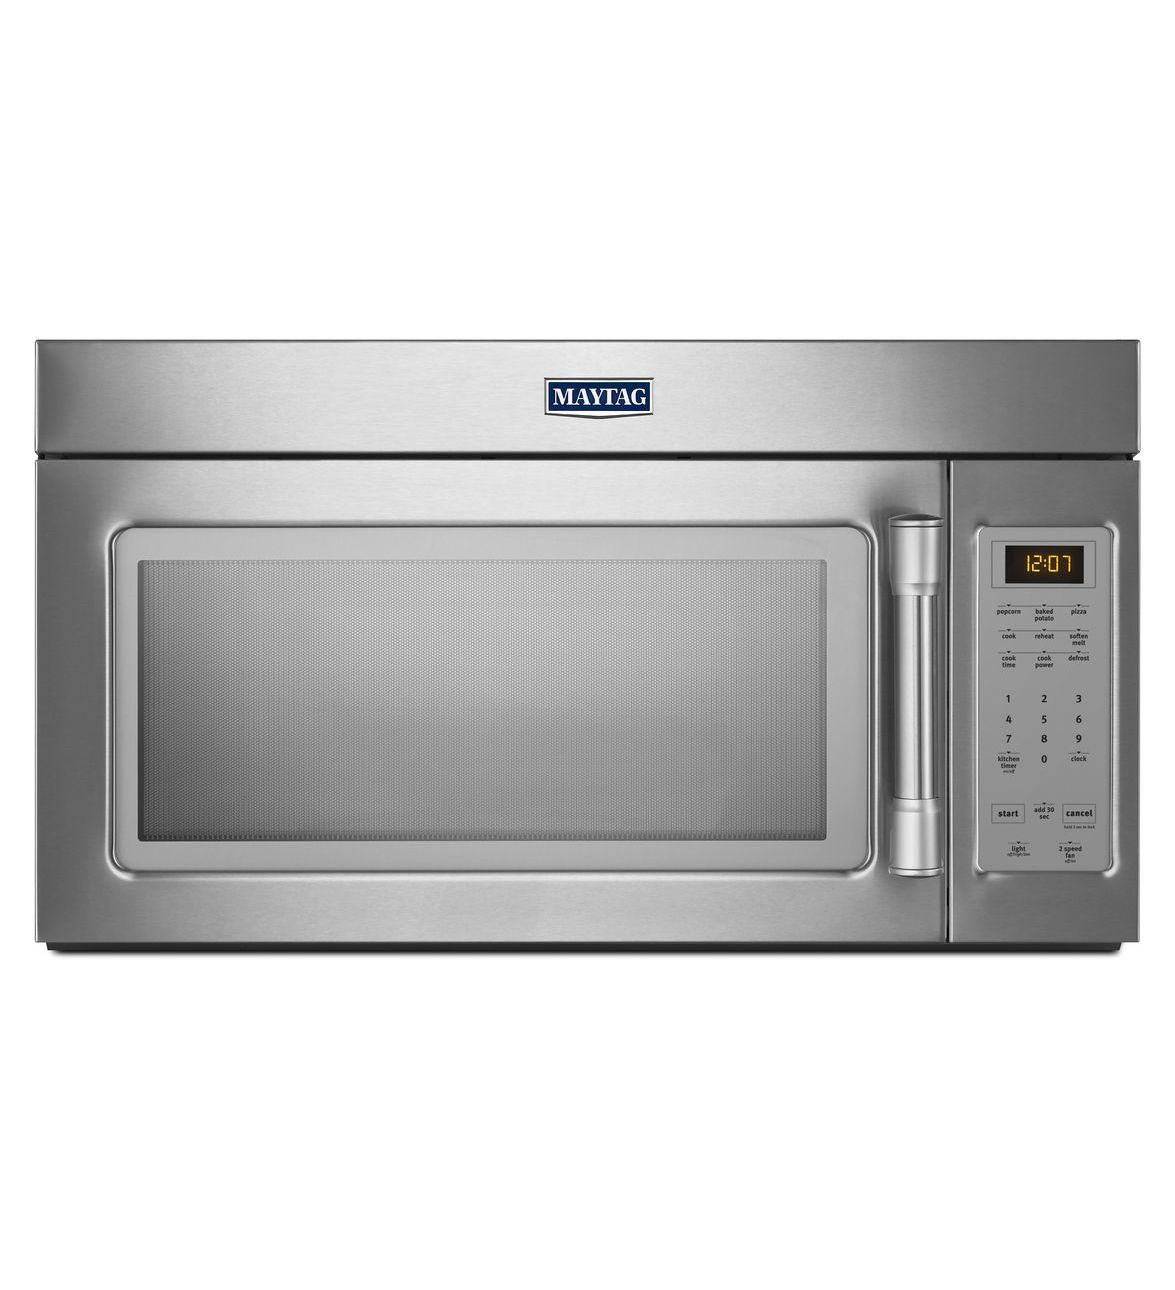 Beau COMPACT OVER THE RANGE MICROWAVE WITH STAINLESS STEEL HANDLE. MMV1174DS